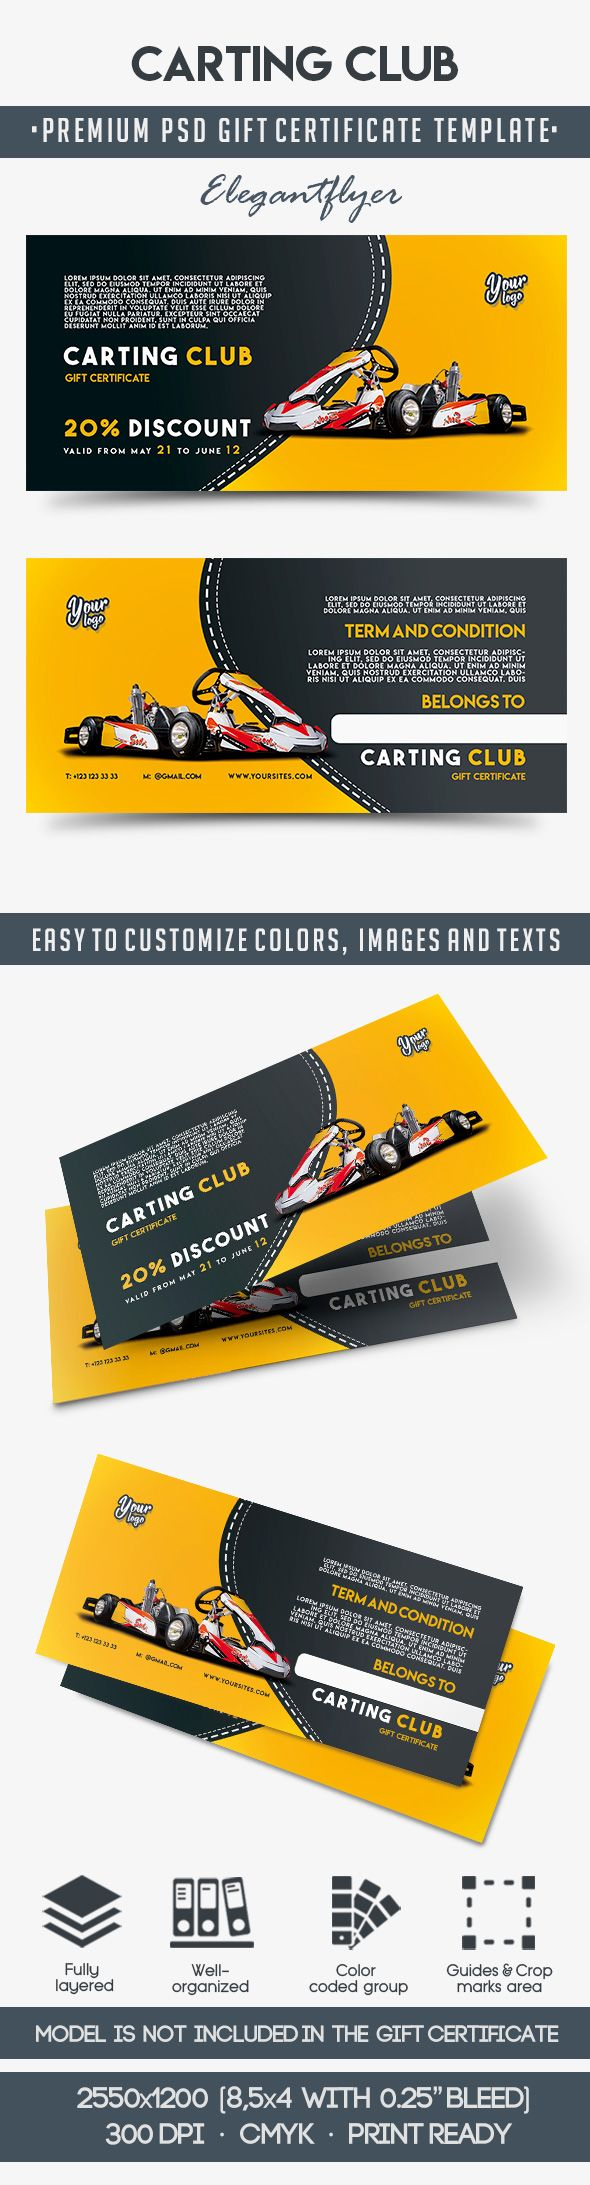 Carting Club Gift Voucher